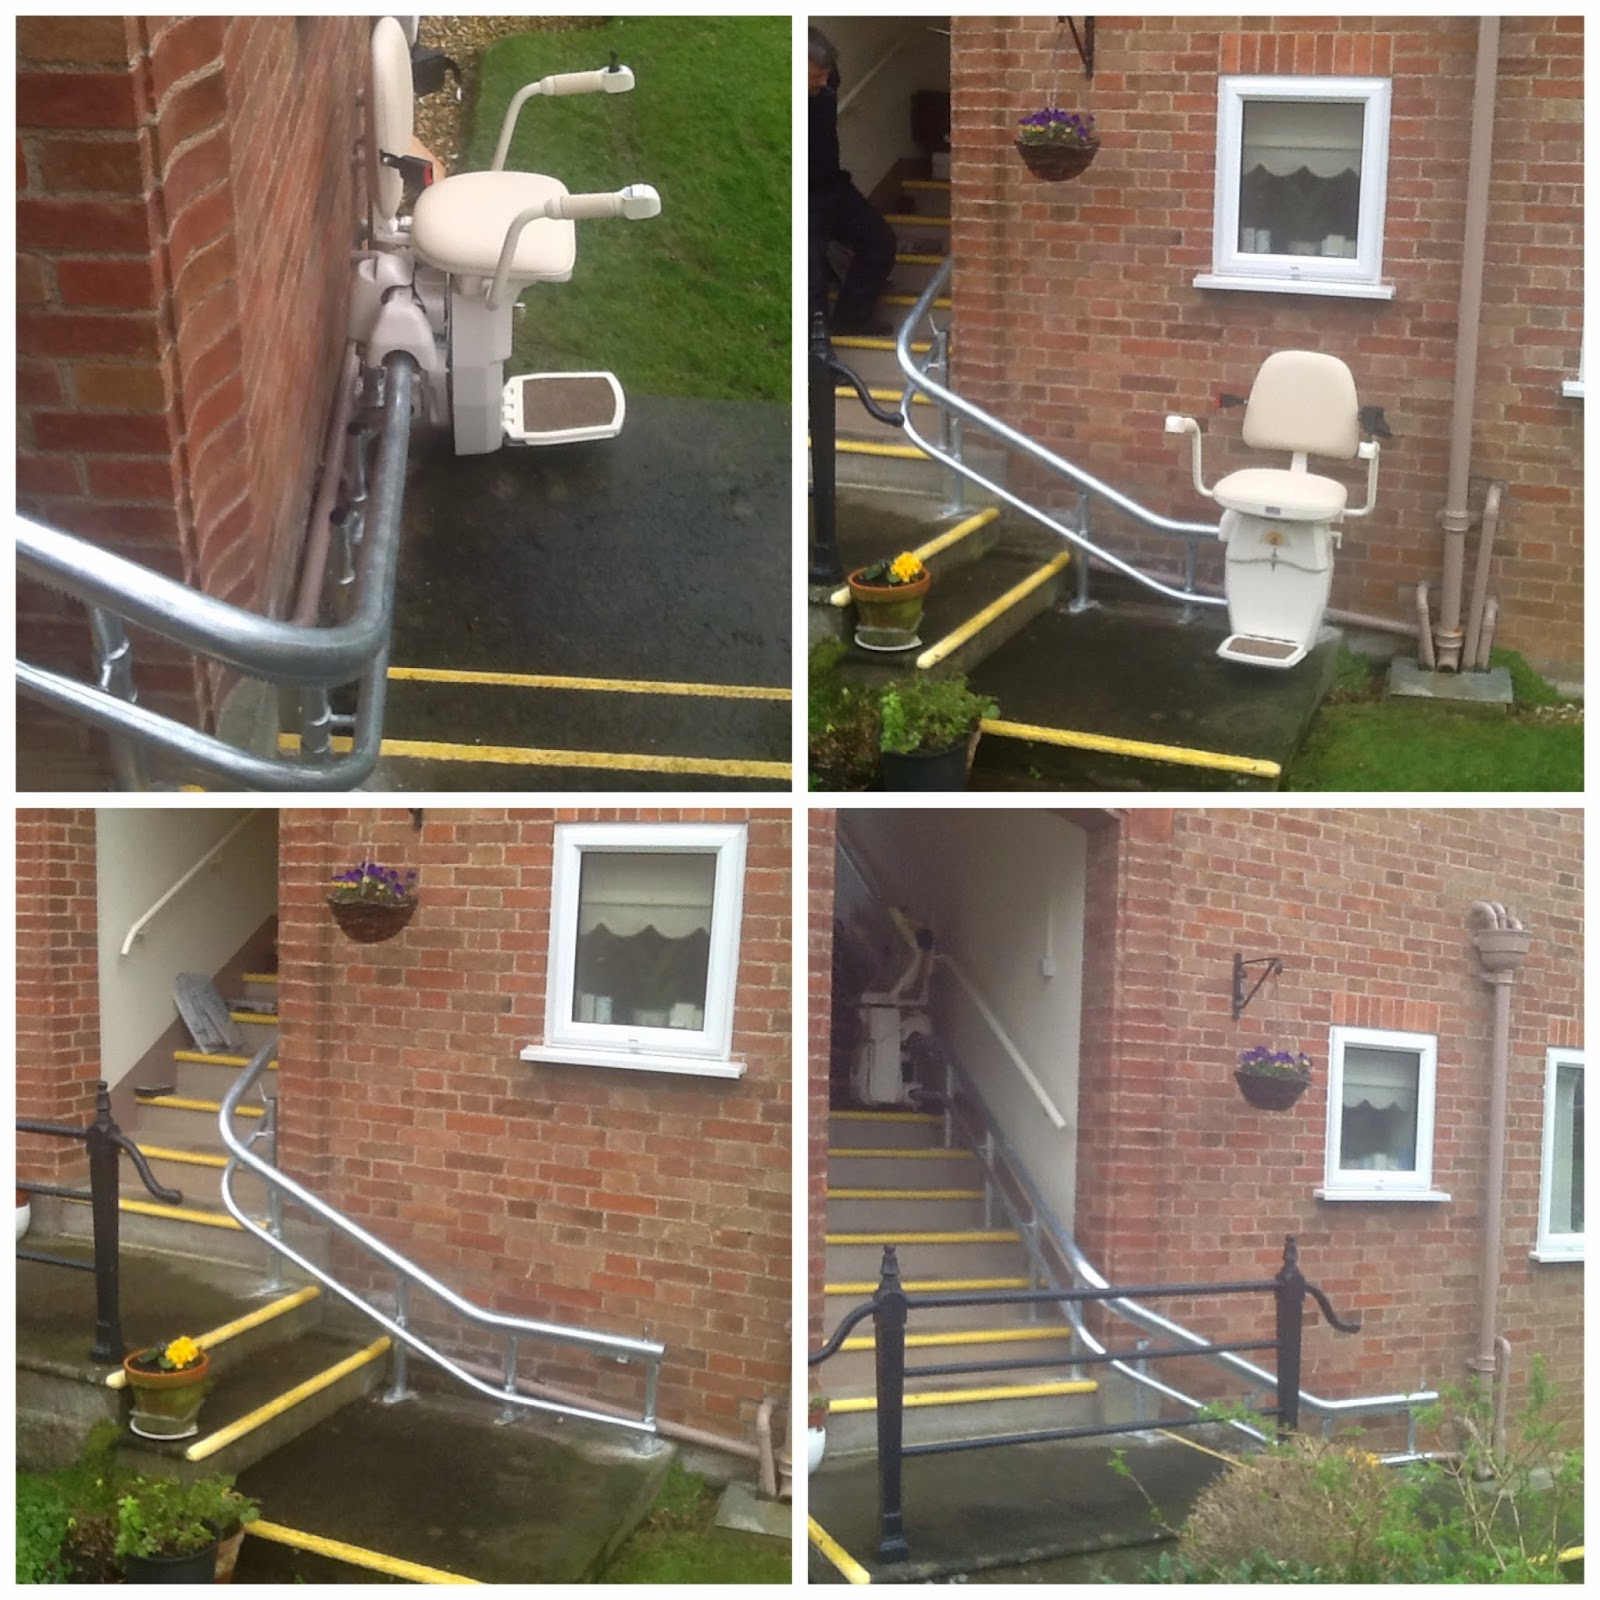 hawle external stairlift manchester branch stair lifts stannah stair lift wiring diagram at crackthecode.co